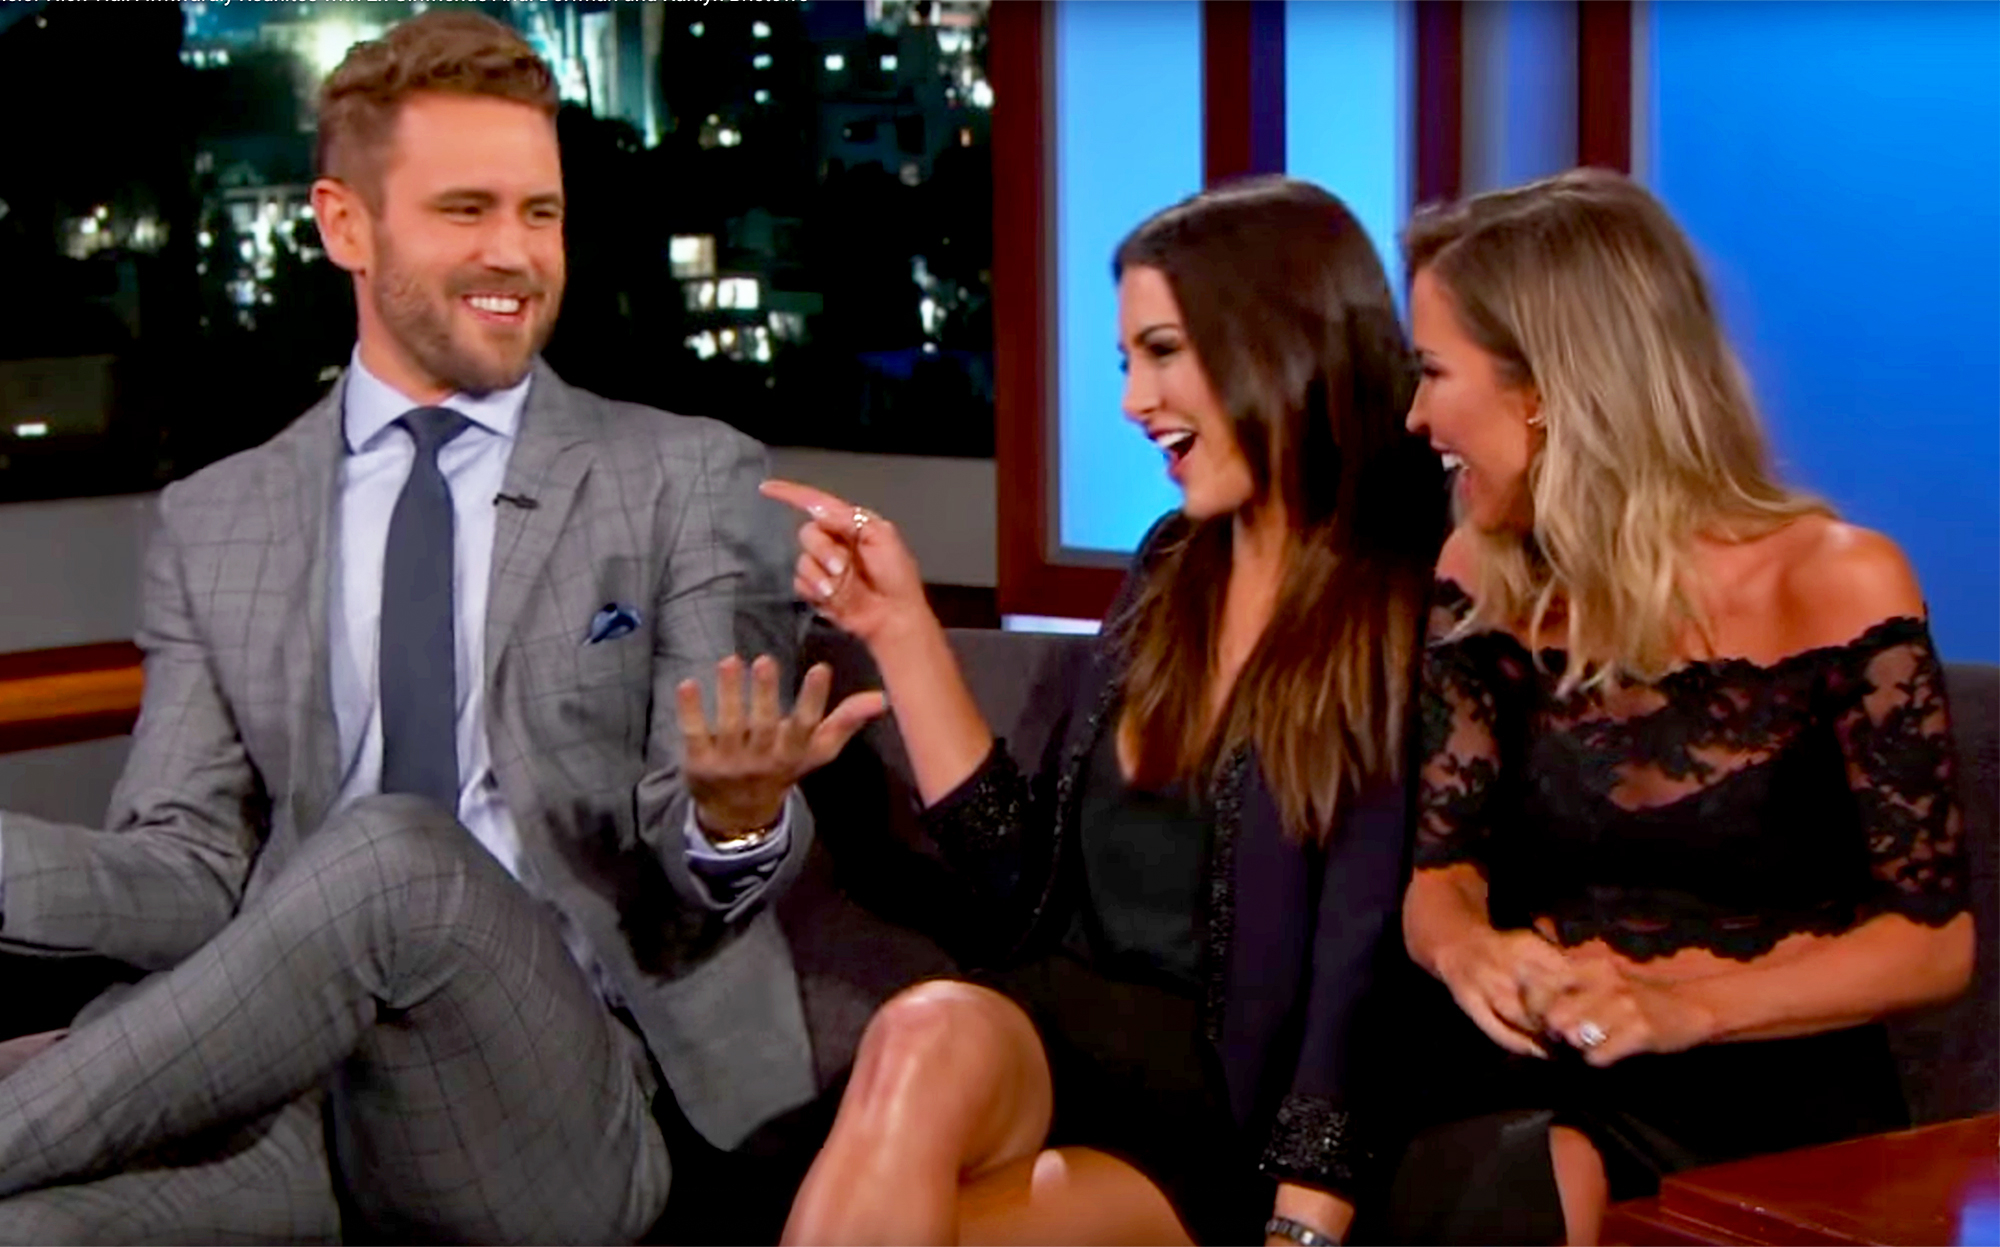 Nick Viall With Andi Dorfman And Kaitlyn Bristowe On Jimmy Kimmel Live